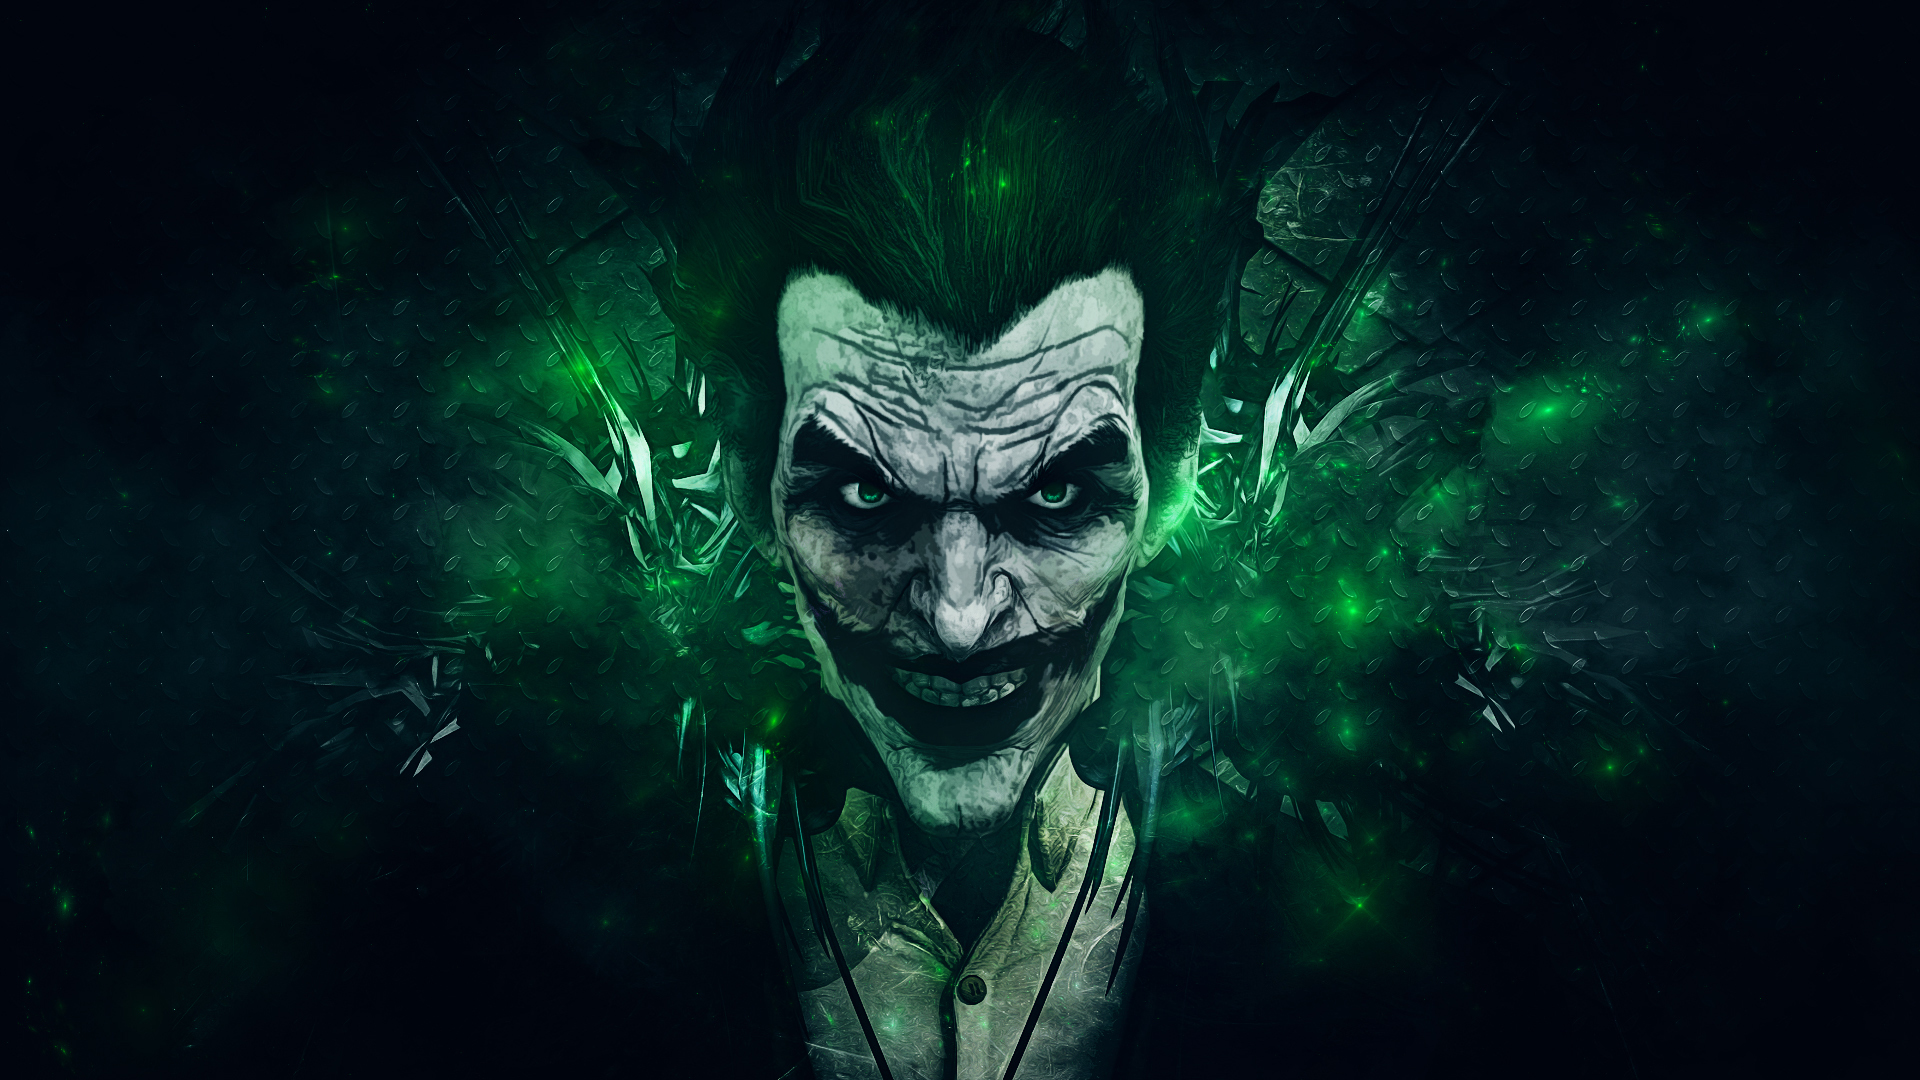 Joker hd wallpapers 1080p wallpapersafari for Joker immagini hd